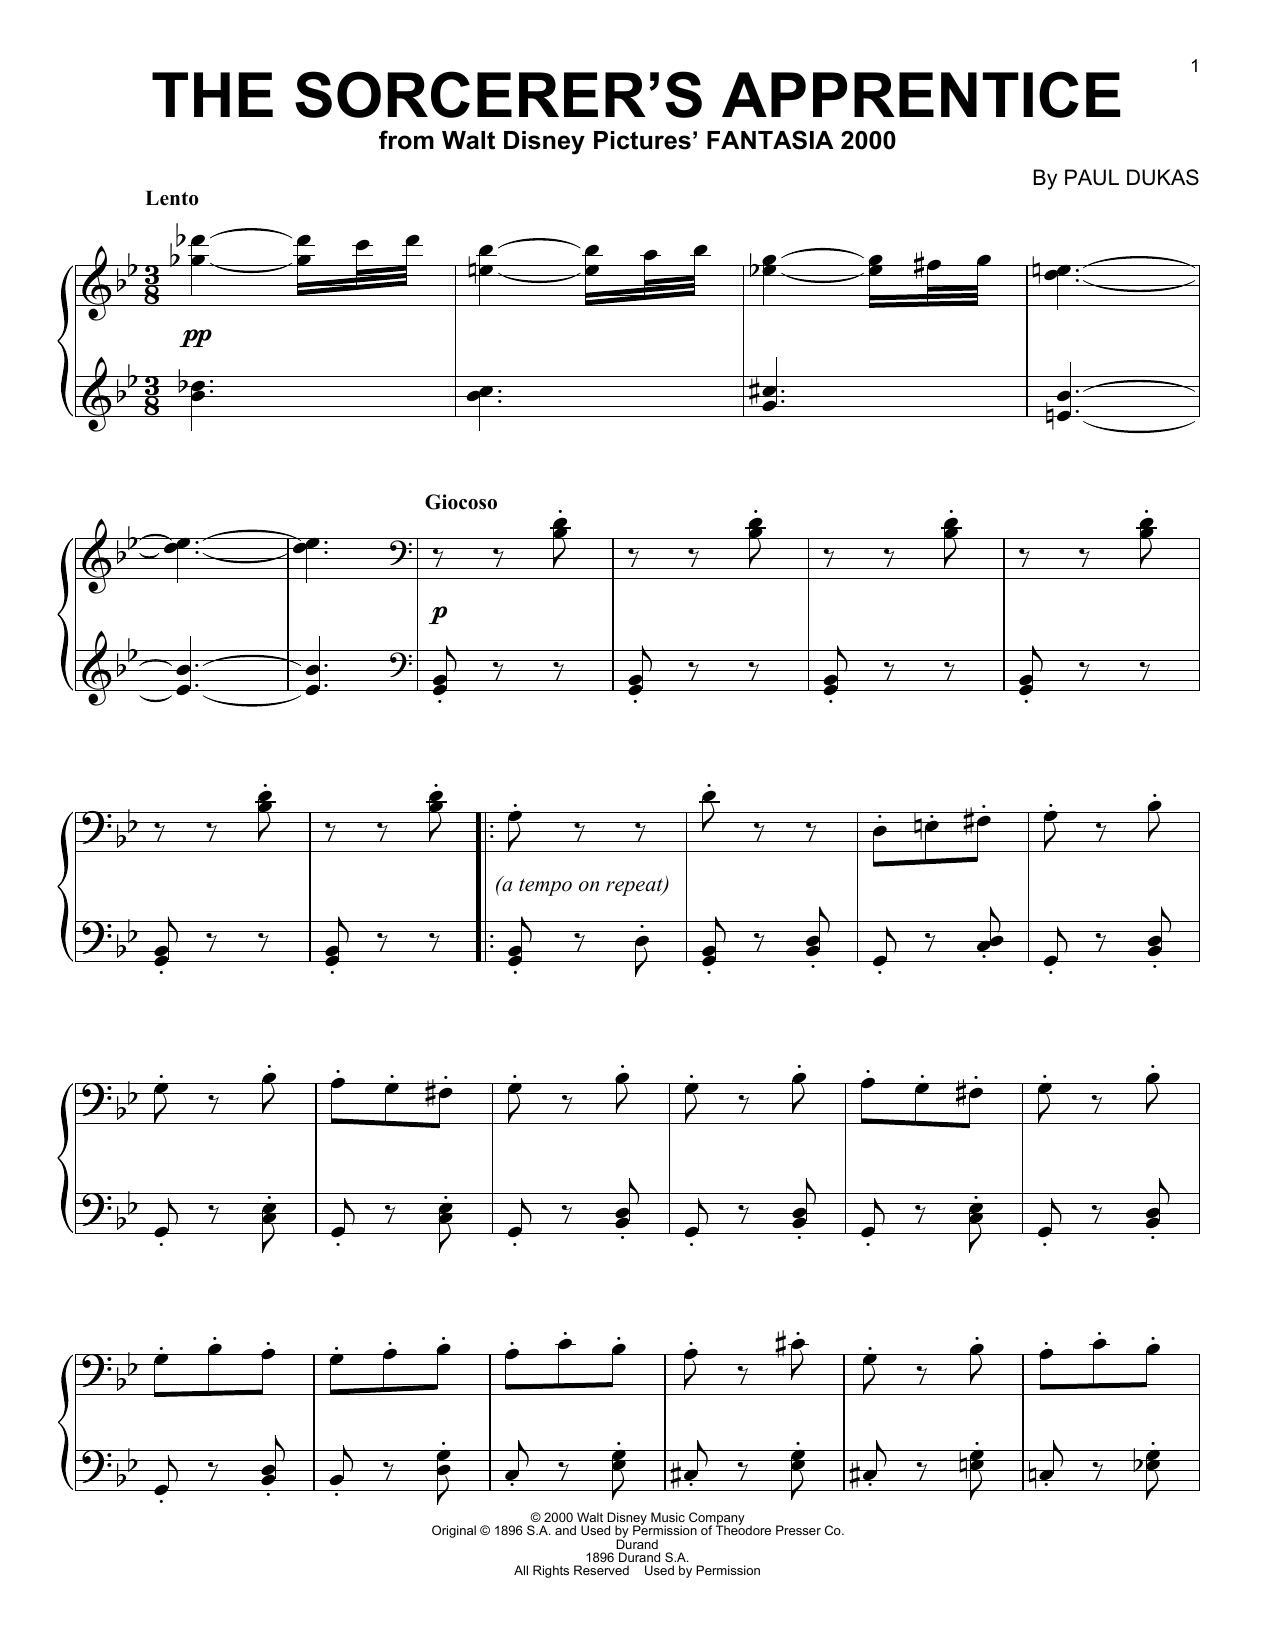 Paul Dukas The Sorcerer's Apprentice sheet music notes and chords. Download Printable PDF.